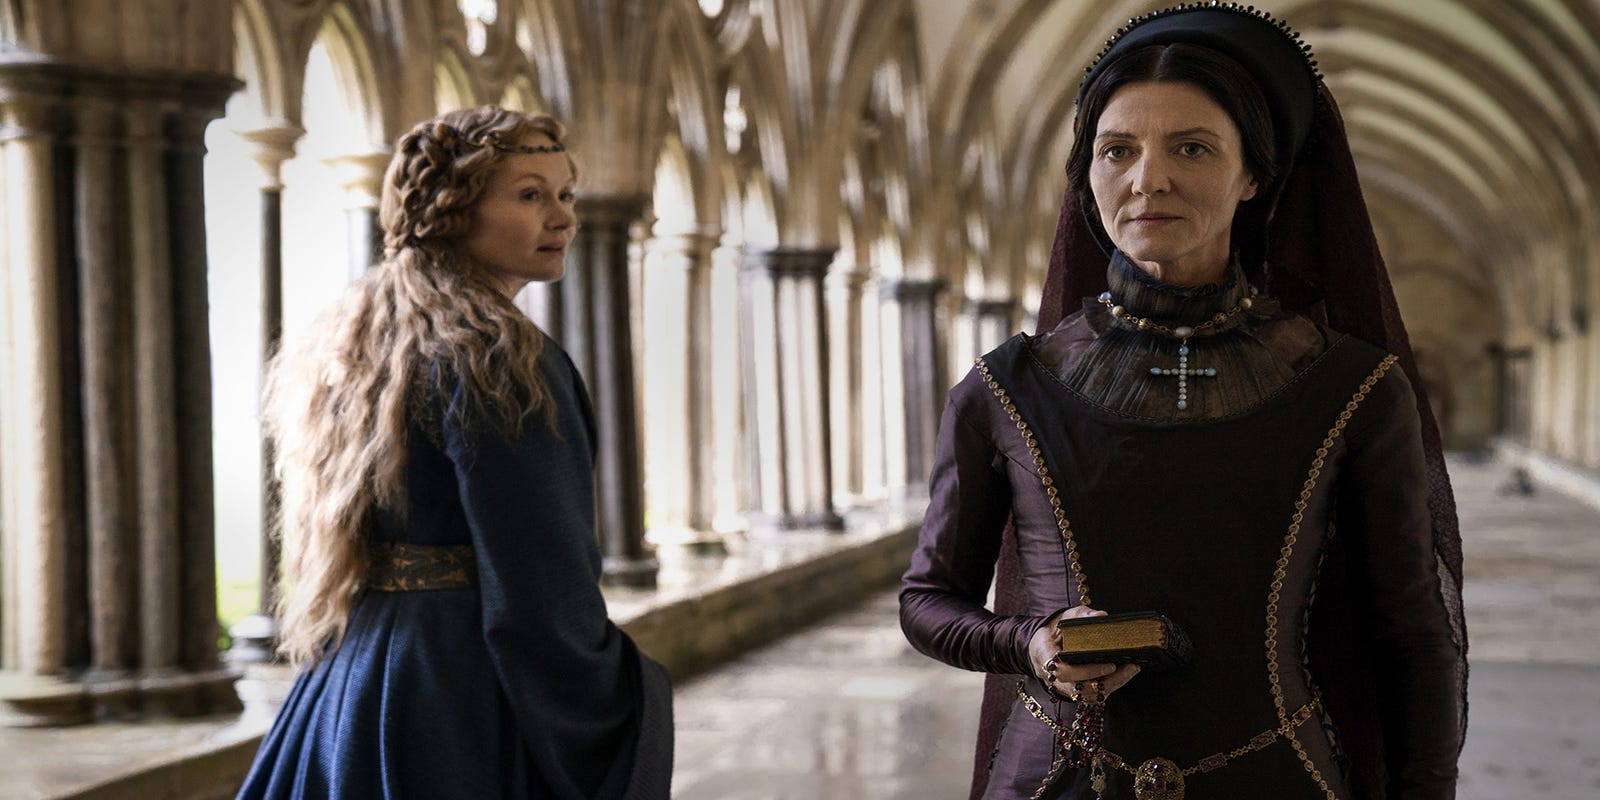 f6995769d0 Review: 'The White Princess' substitutes invented royals history for drama